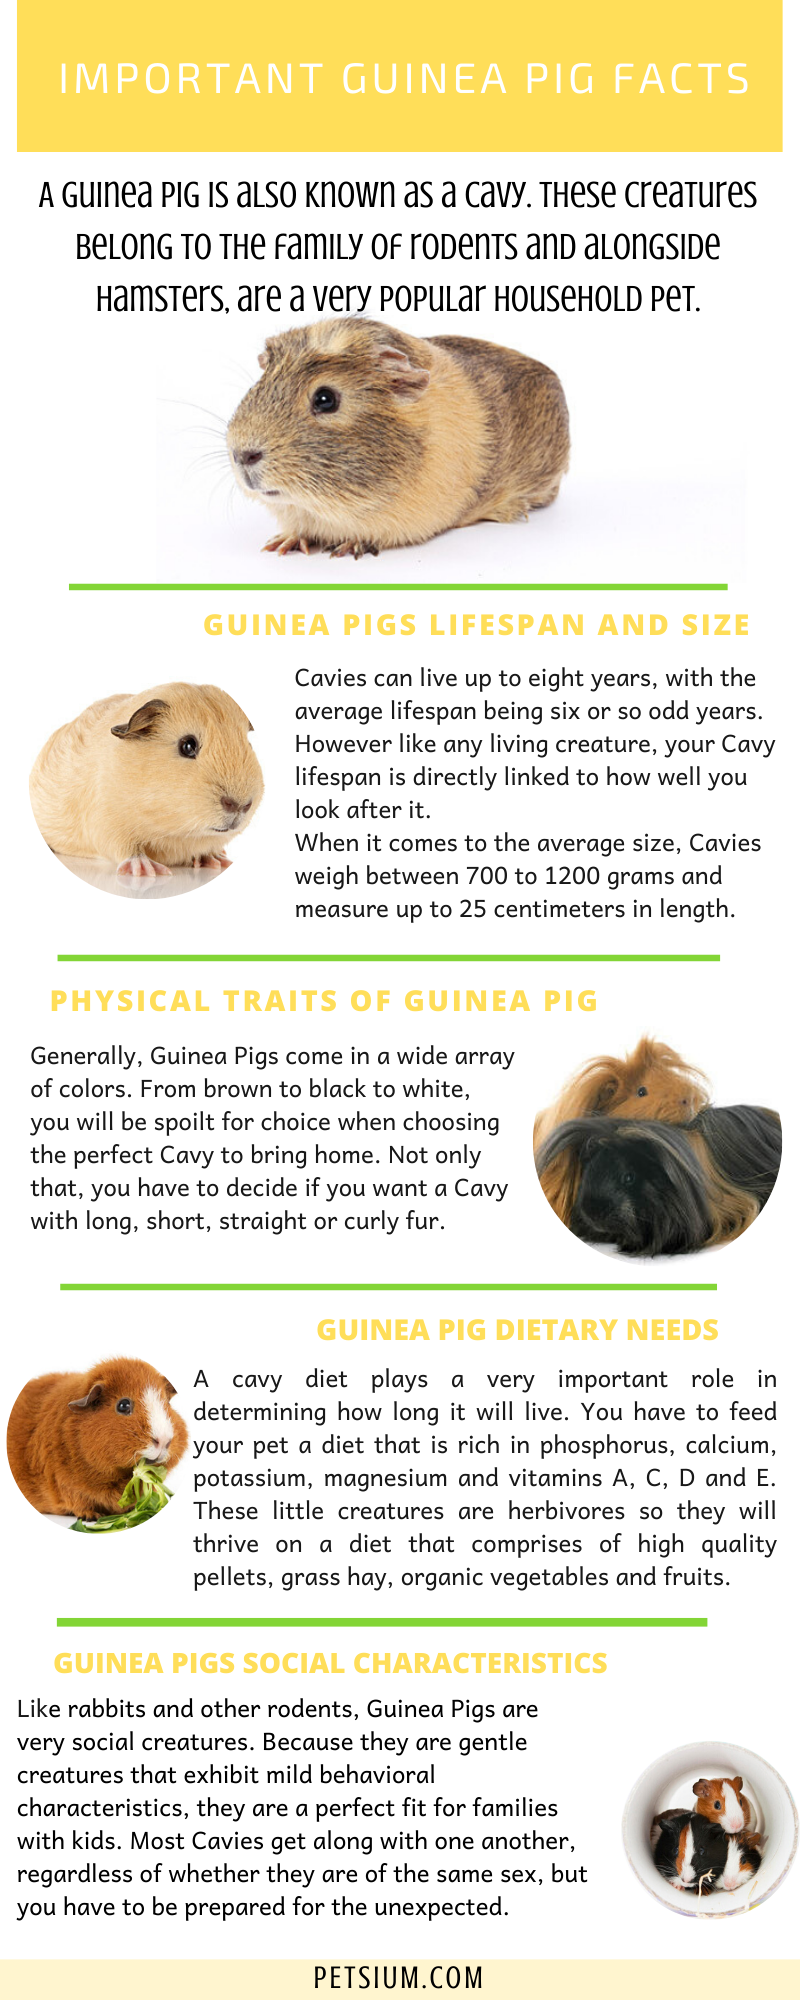 Guinea Pig Facts Infographic